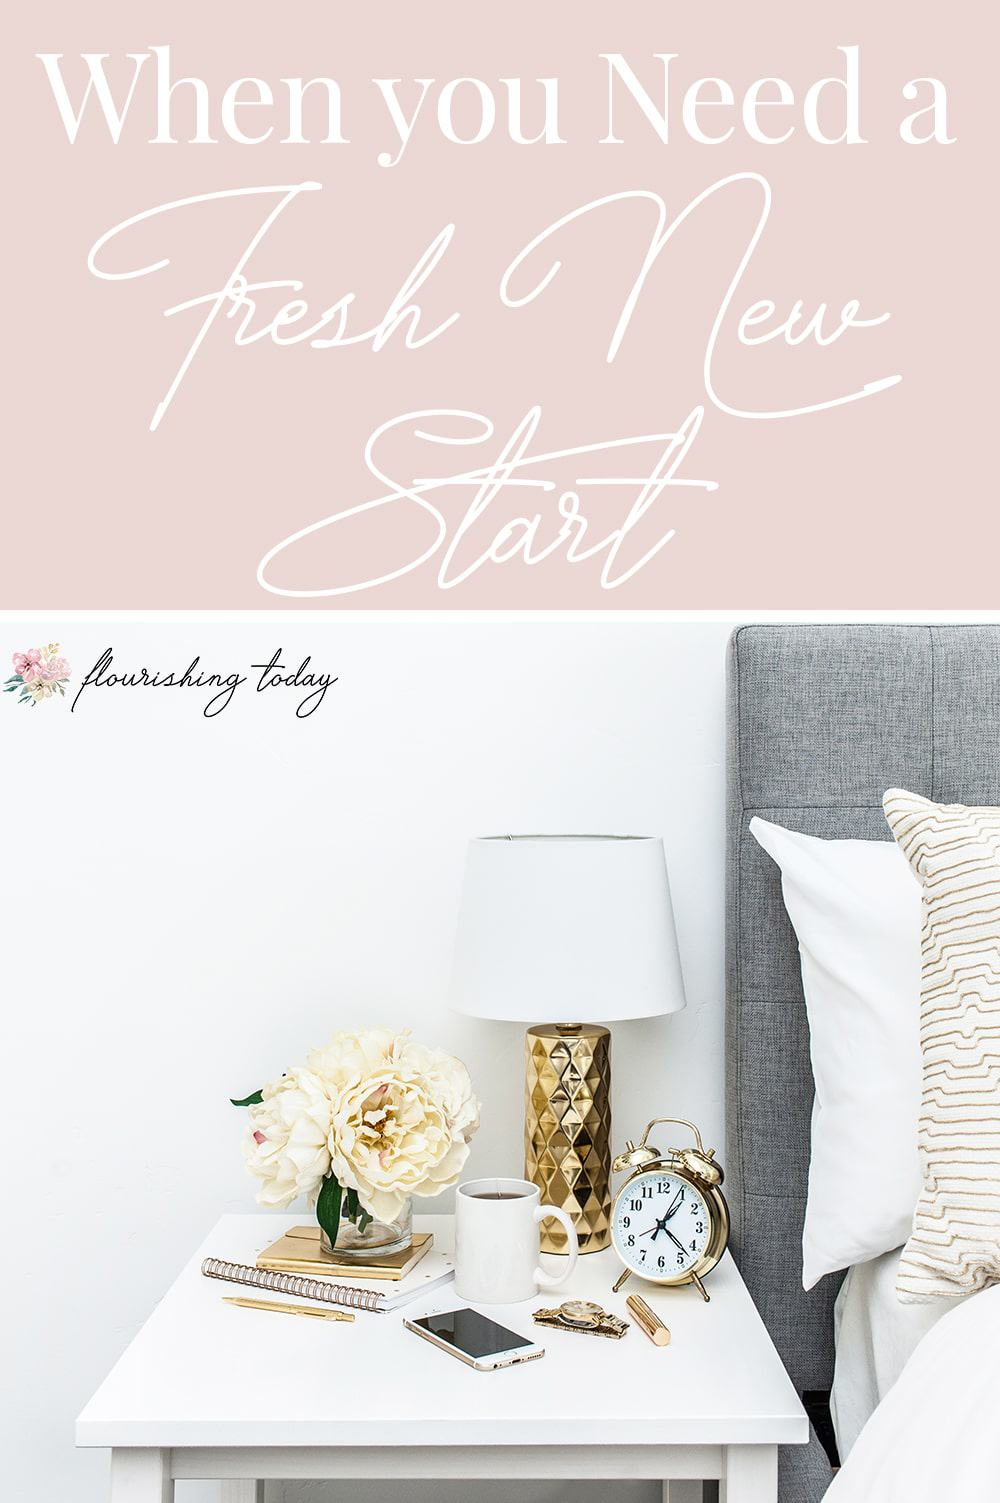 What are you believing for this year? Do you need a fresh new start? God is a god of New Beginnings and Fresh Starts. Do you believe it? #freshnewstart #newbeginnings #newyear #freshstart #restart